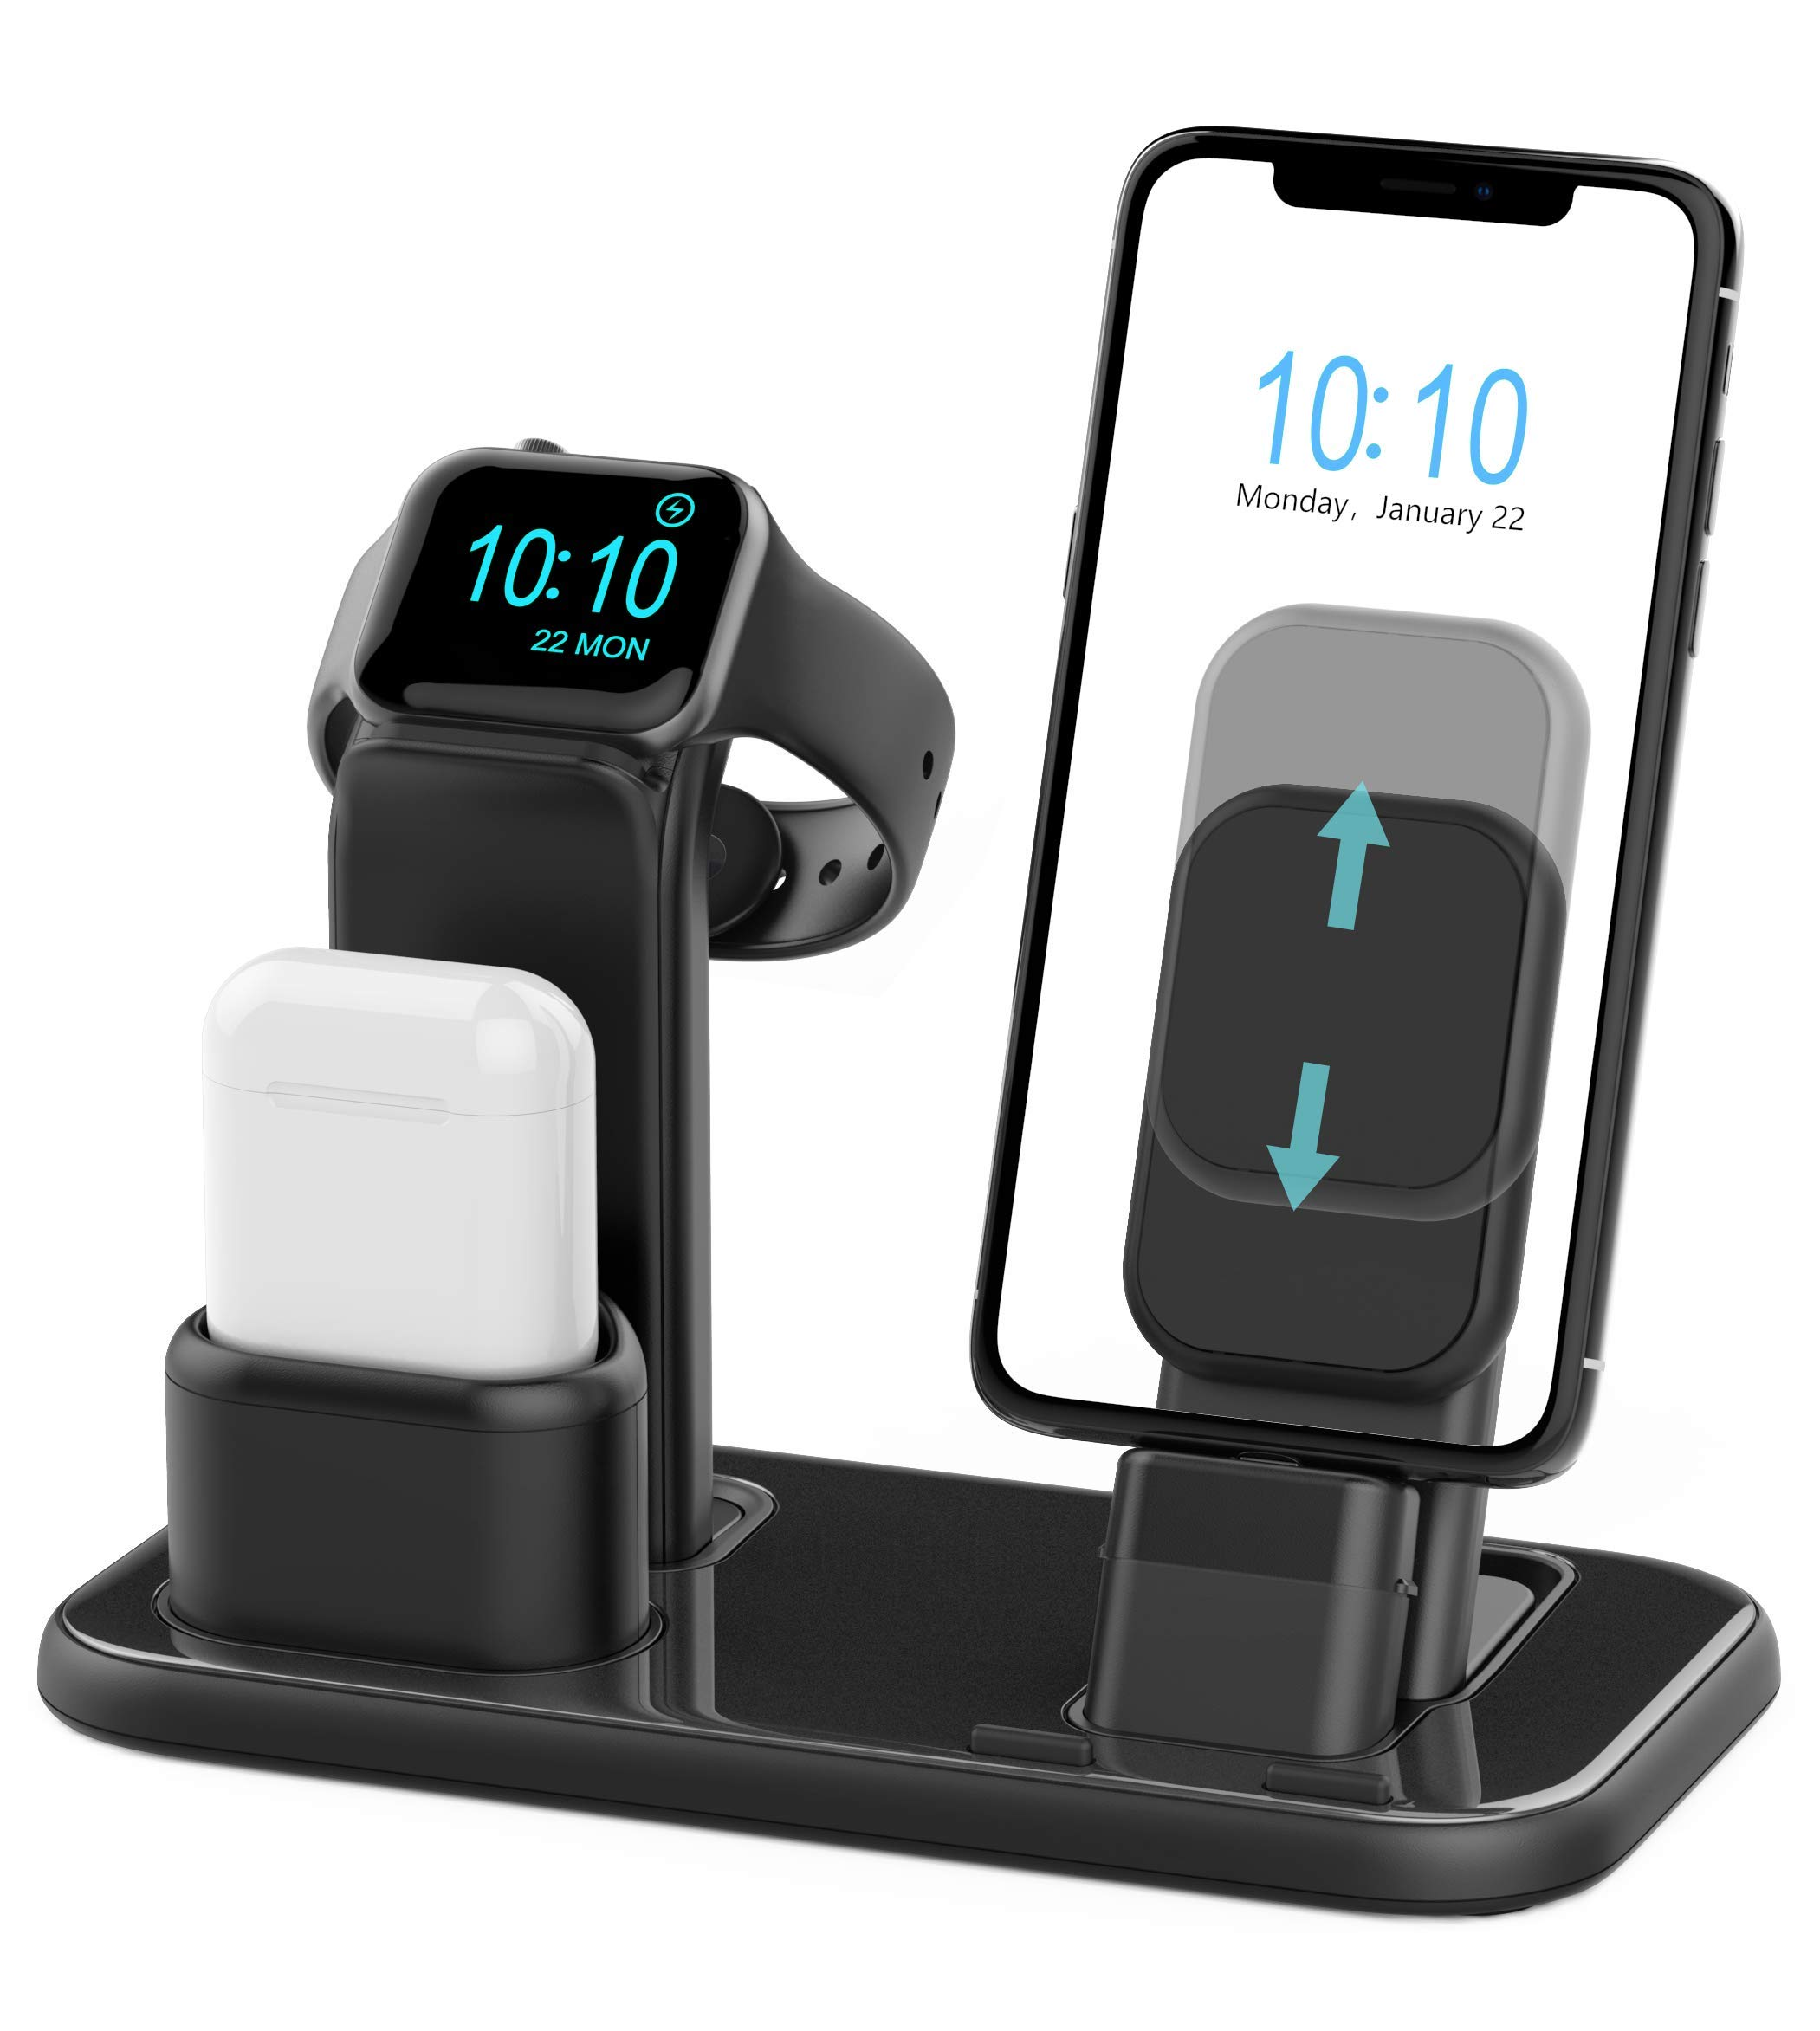 Beacoo Upgraded 3 in 1 Charging Stand for iWatch Series 4/3/2/1, Charging Station Dock Compatible with Airpods iPhone Xs/X Max/XR/X/8/8Plus/7/7 Plus /6S /6S Plus/9.7 inches iPad(No Charger & Cables) by BEACOO